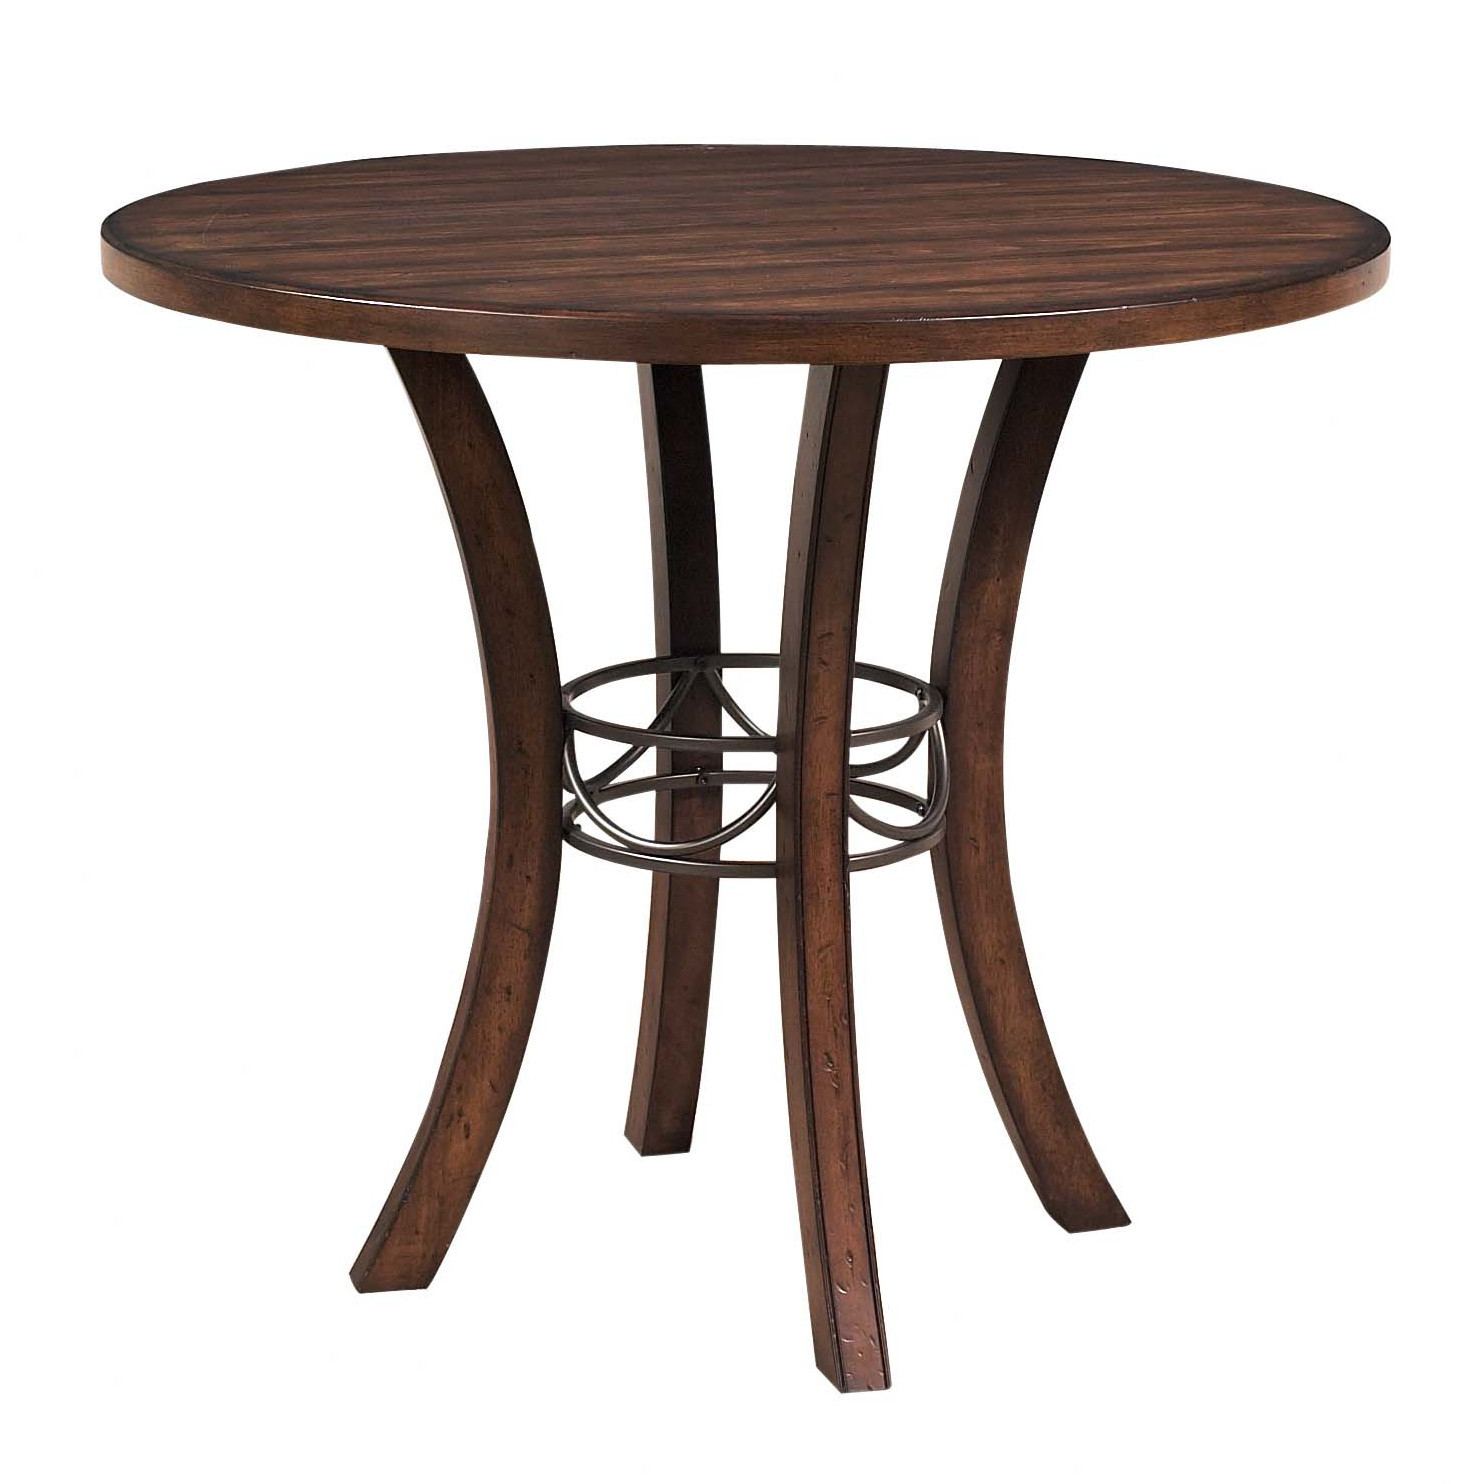 Best ideas about Dining Table Height . Save or Pin Hillsdale Cameron Round Counter Height Dining Table Now.